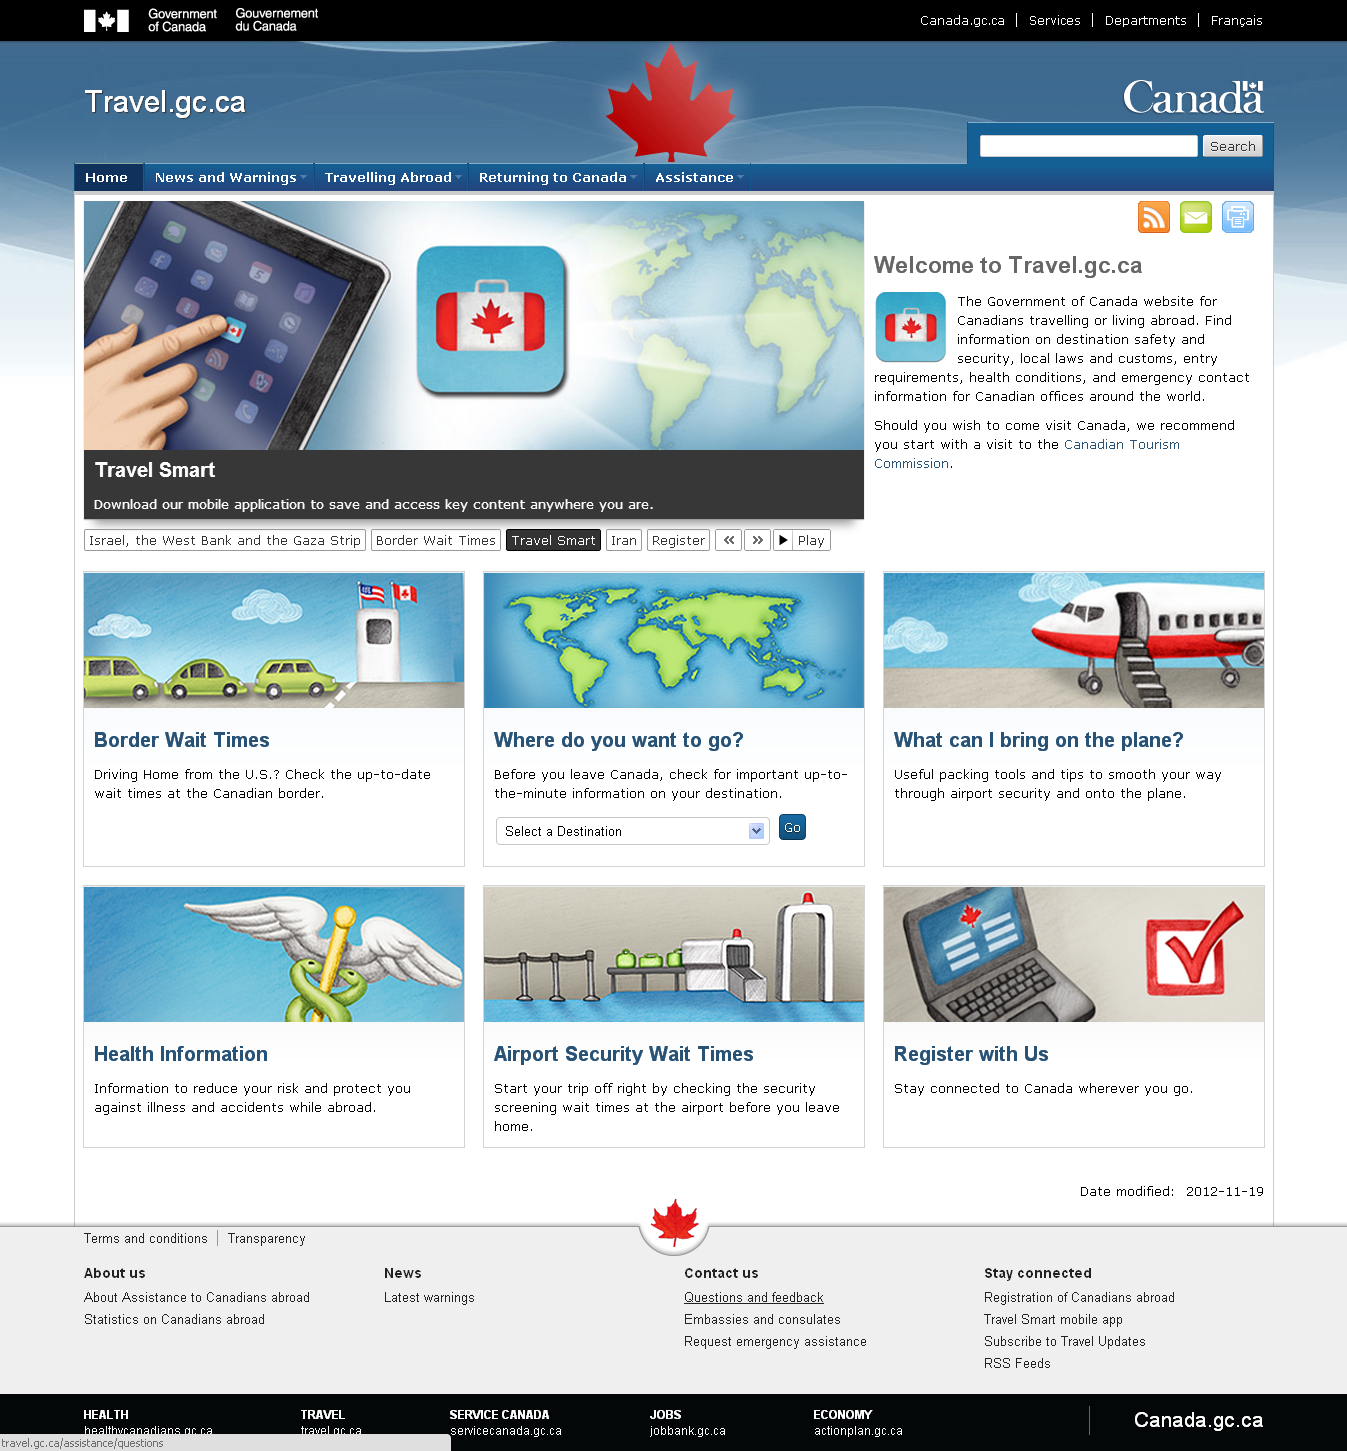 Government of Canada Launches International Travel Website